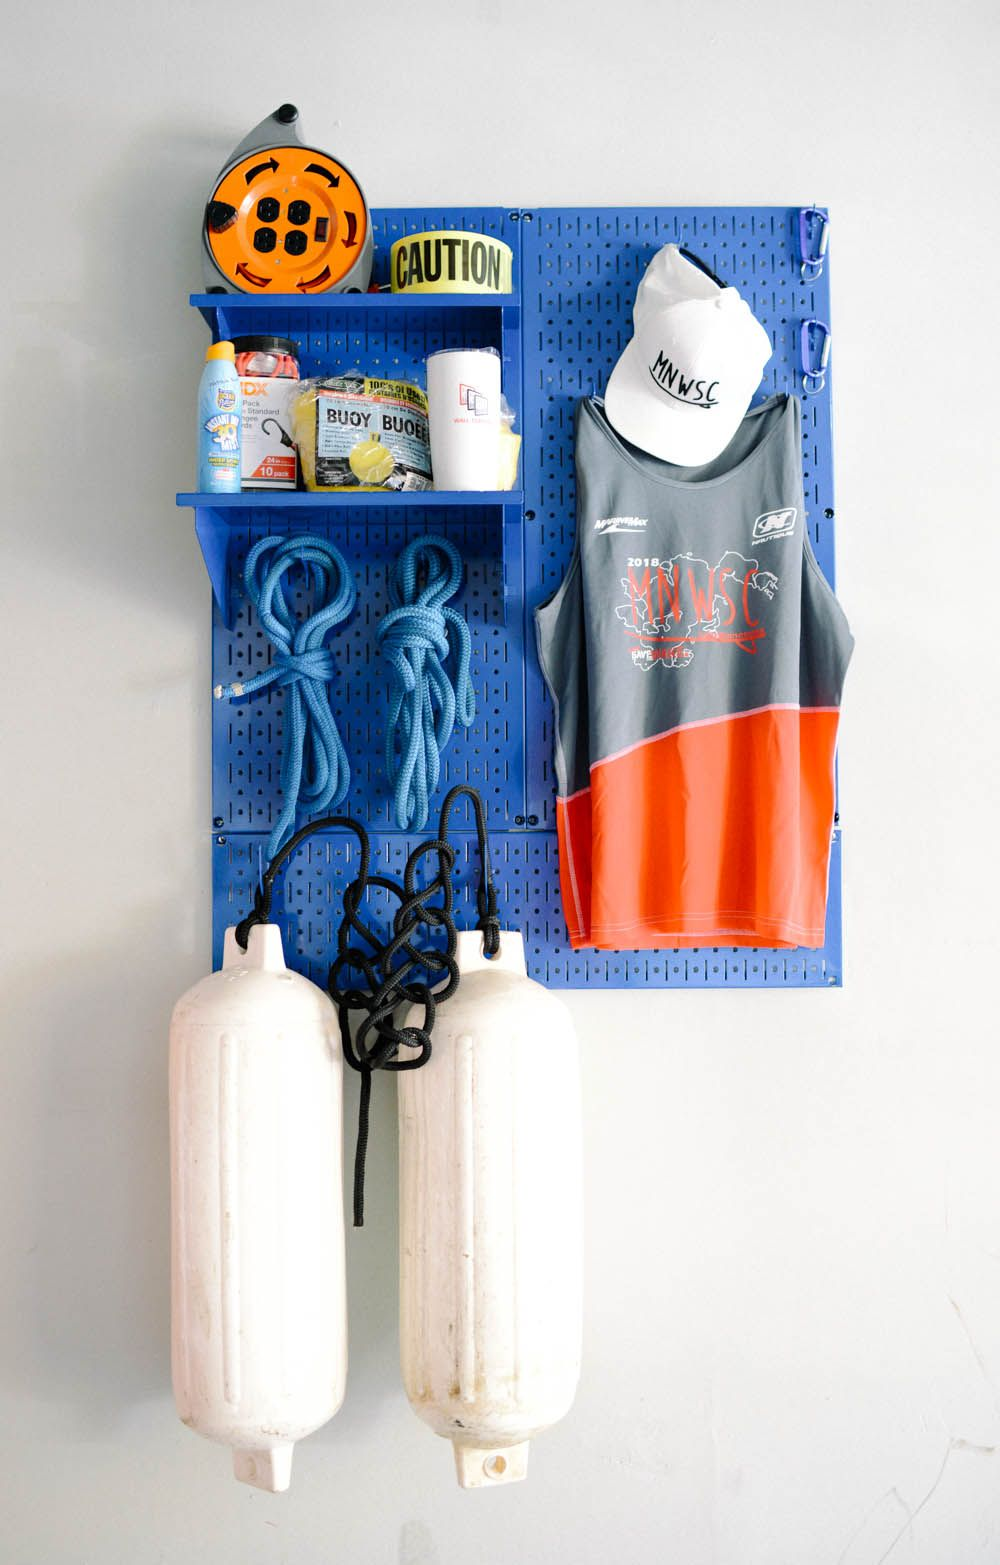 Water Sports Equipment Storage For Skiing Sailing Wakeboarding Boating And Water Activities Sports Equipment Storage Peg Board Board Storage